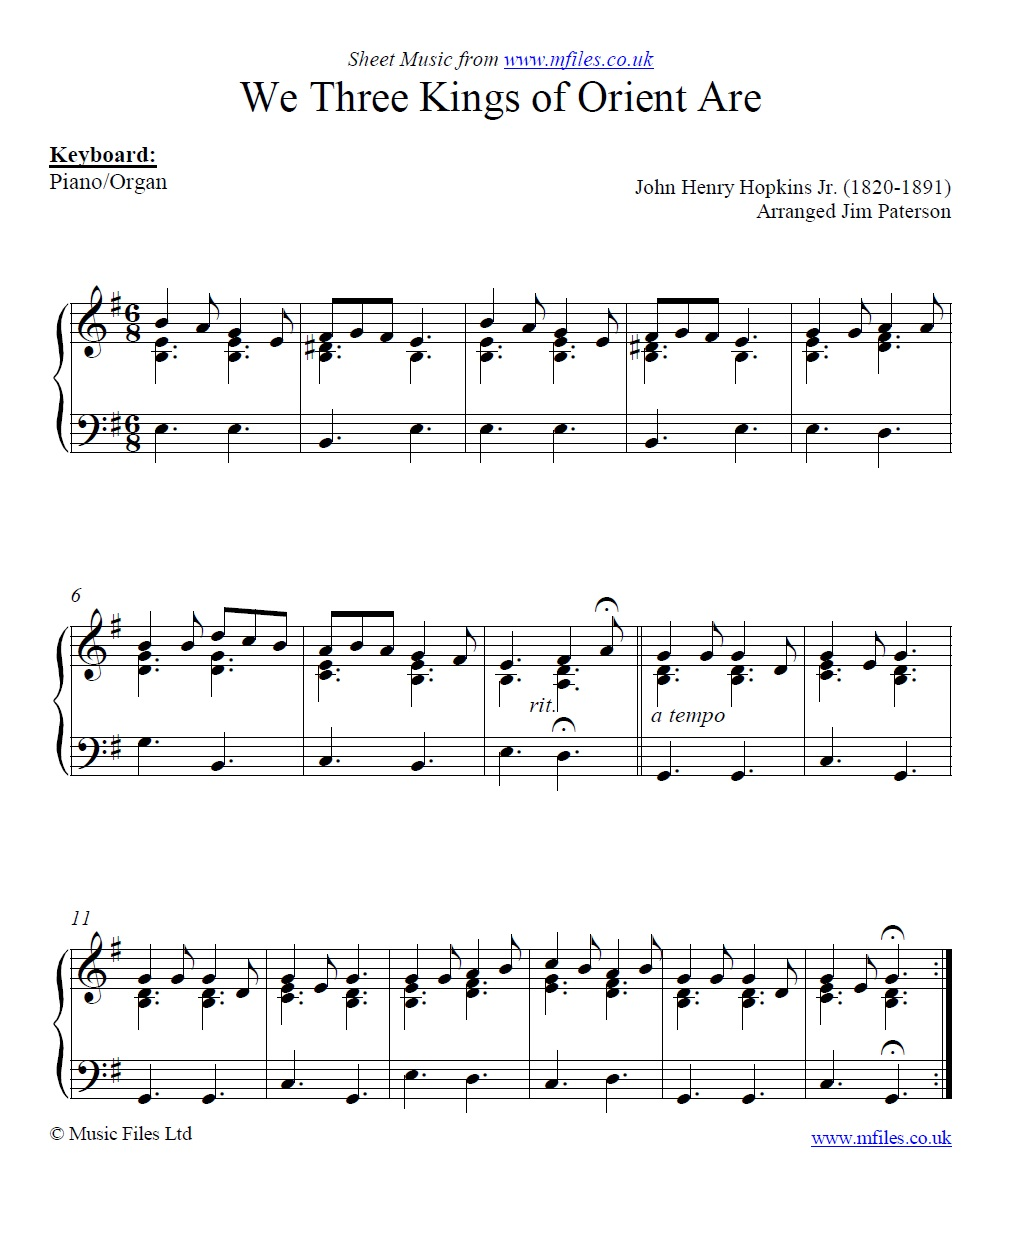 We Three Kings of Orient Are for piano - sheet music 1st page